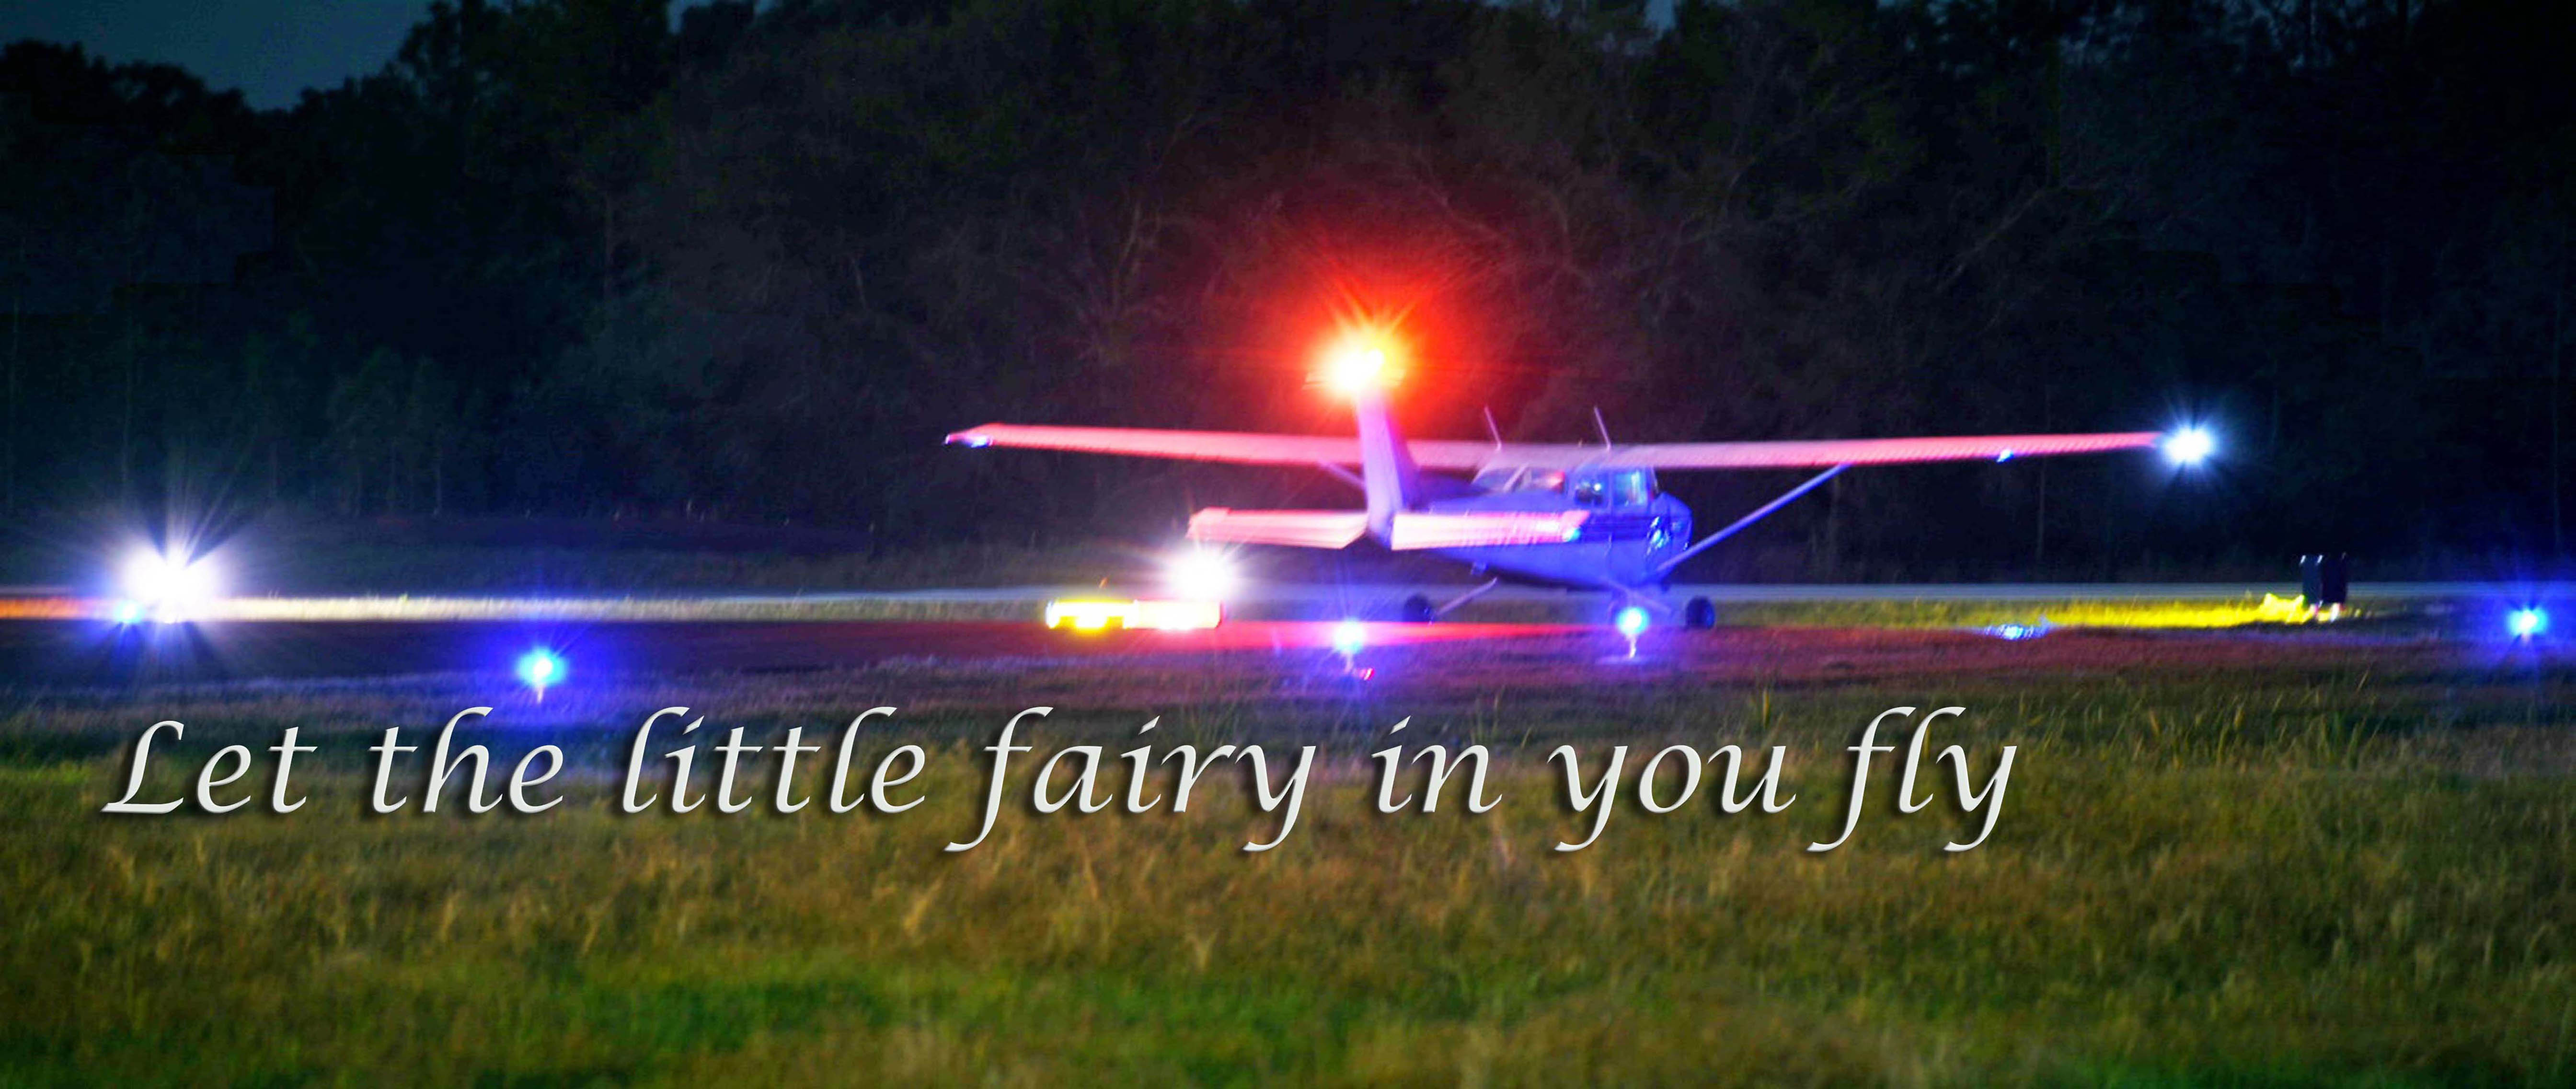 Let the little fairy in you fly